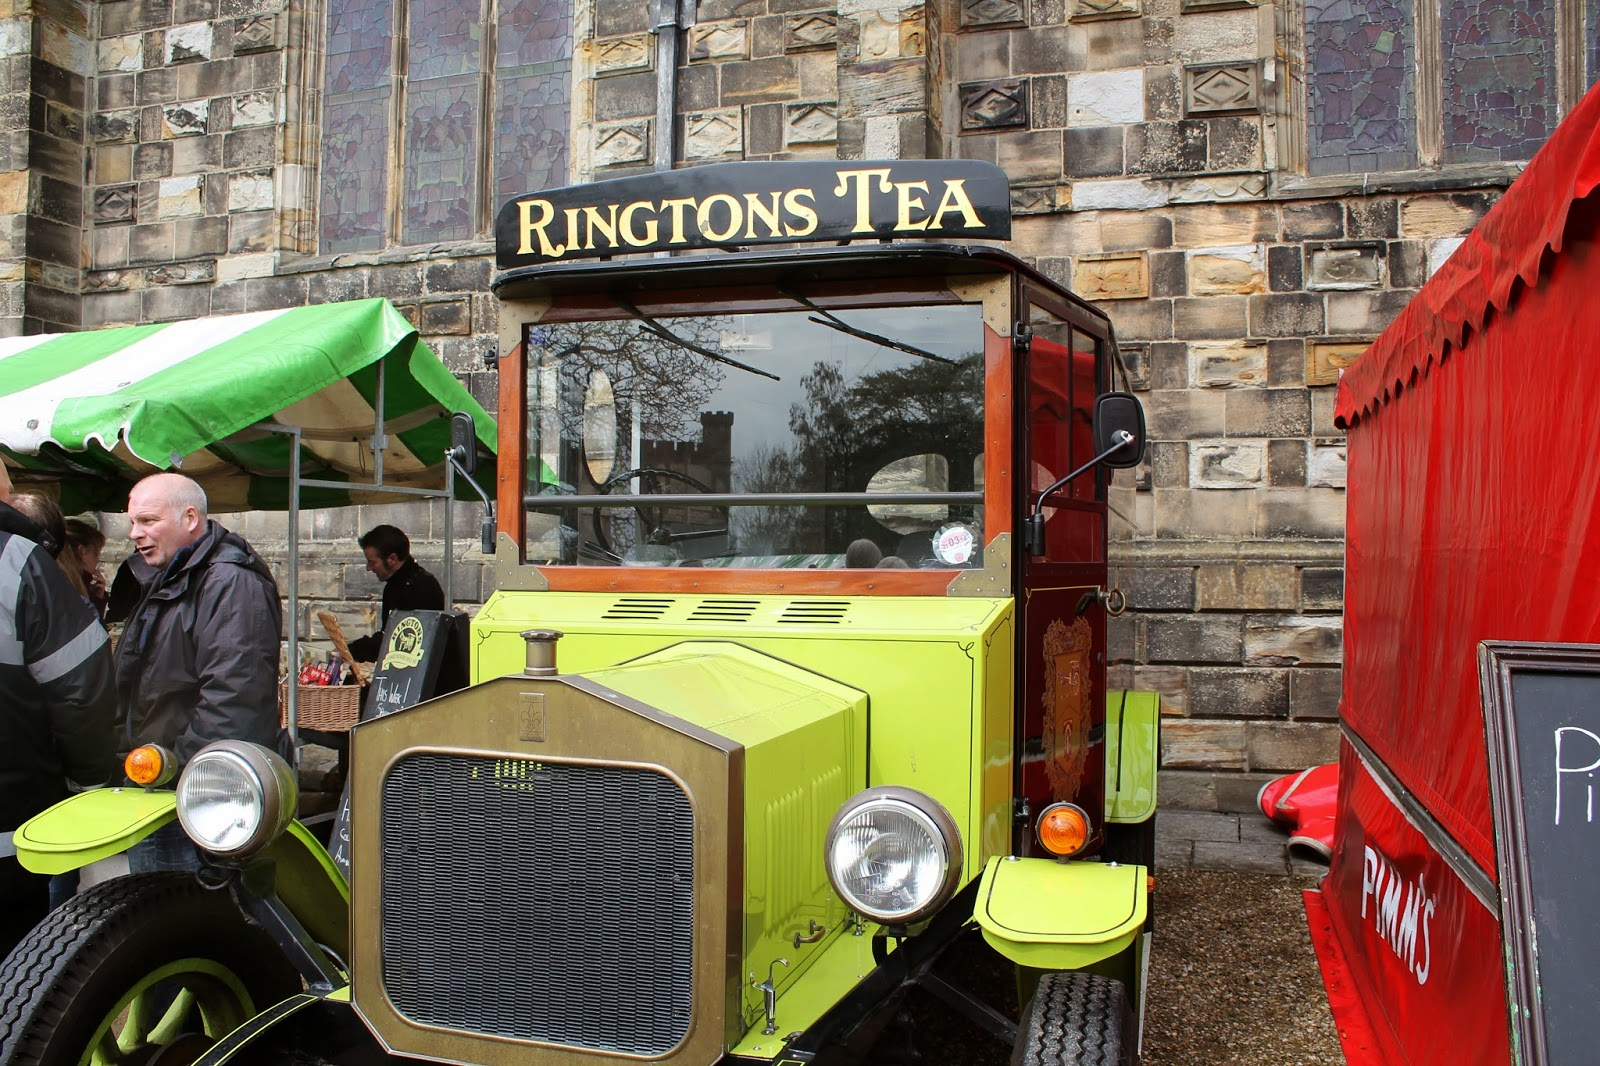 Bishop Auckland Food Festival 2014 - Rington Tea Car